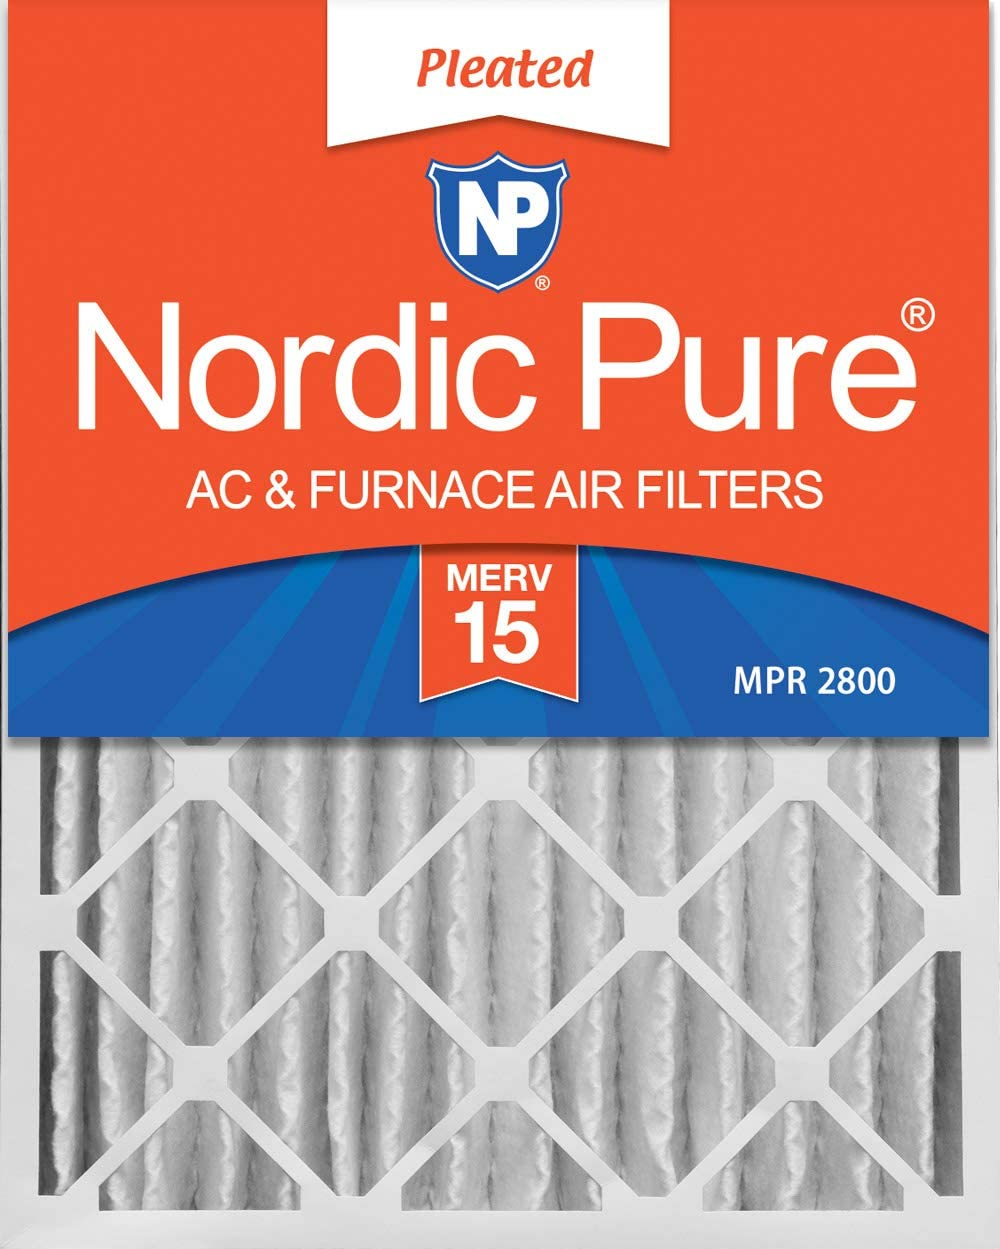 MERV 14 Plus Carbon Pleated AC Furnace Air Filters 6 PACK 6 PACK 3-5//8 Actual Depth Nordic Pure 20x24x4